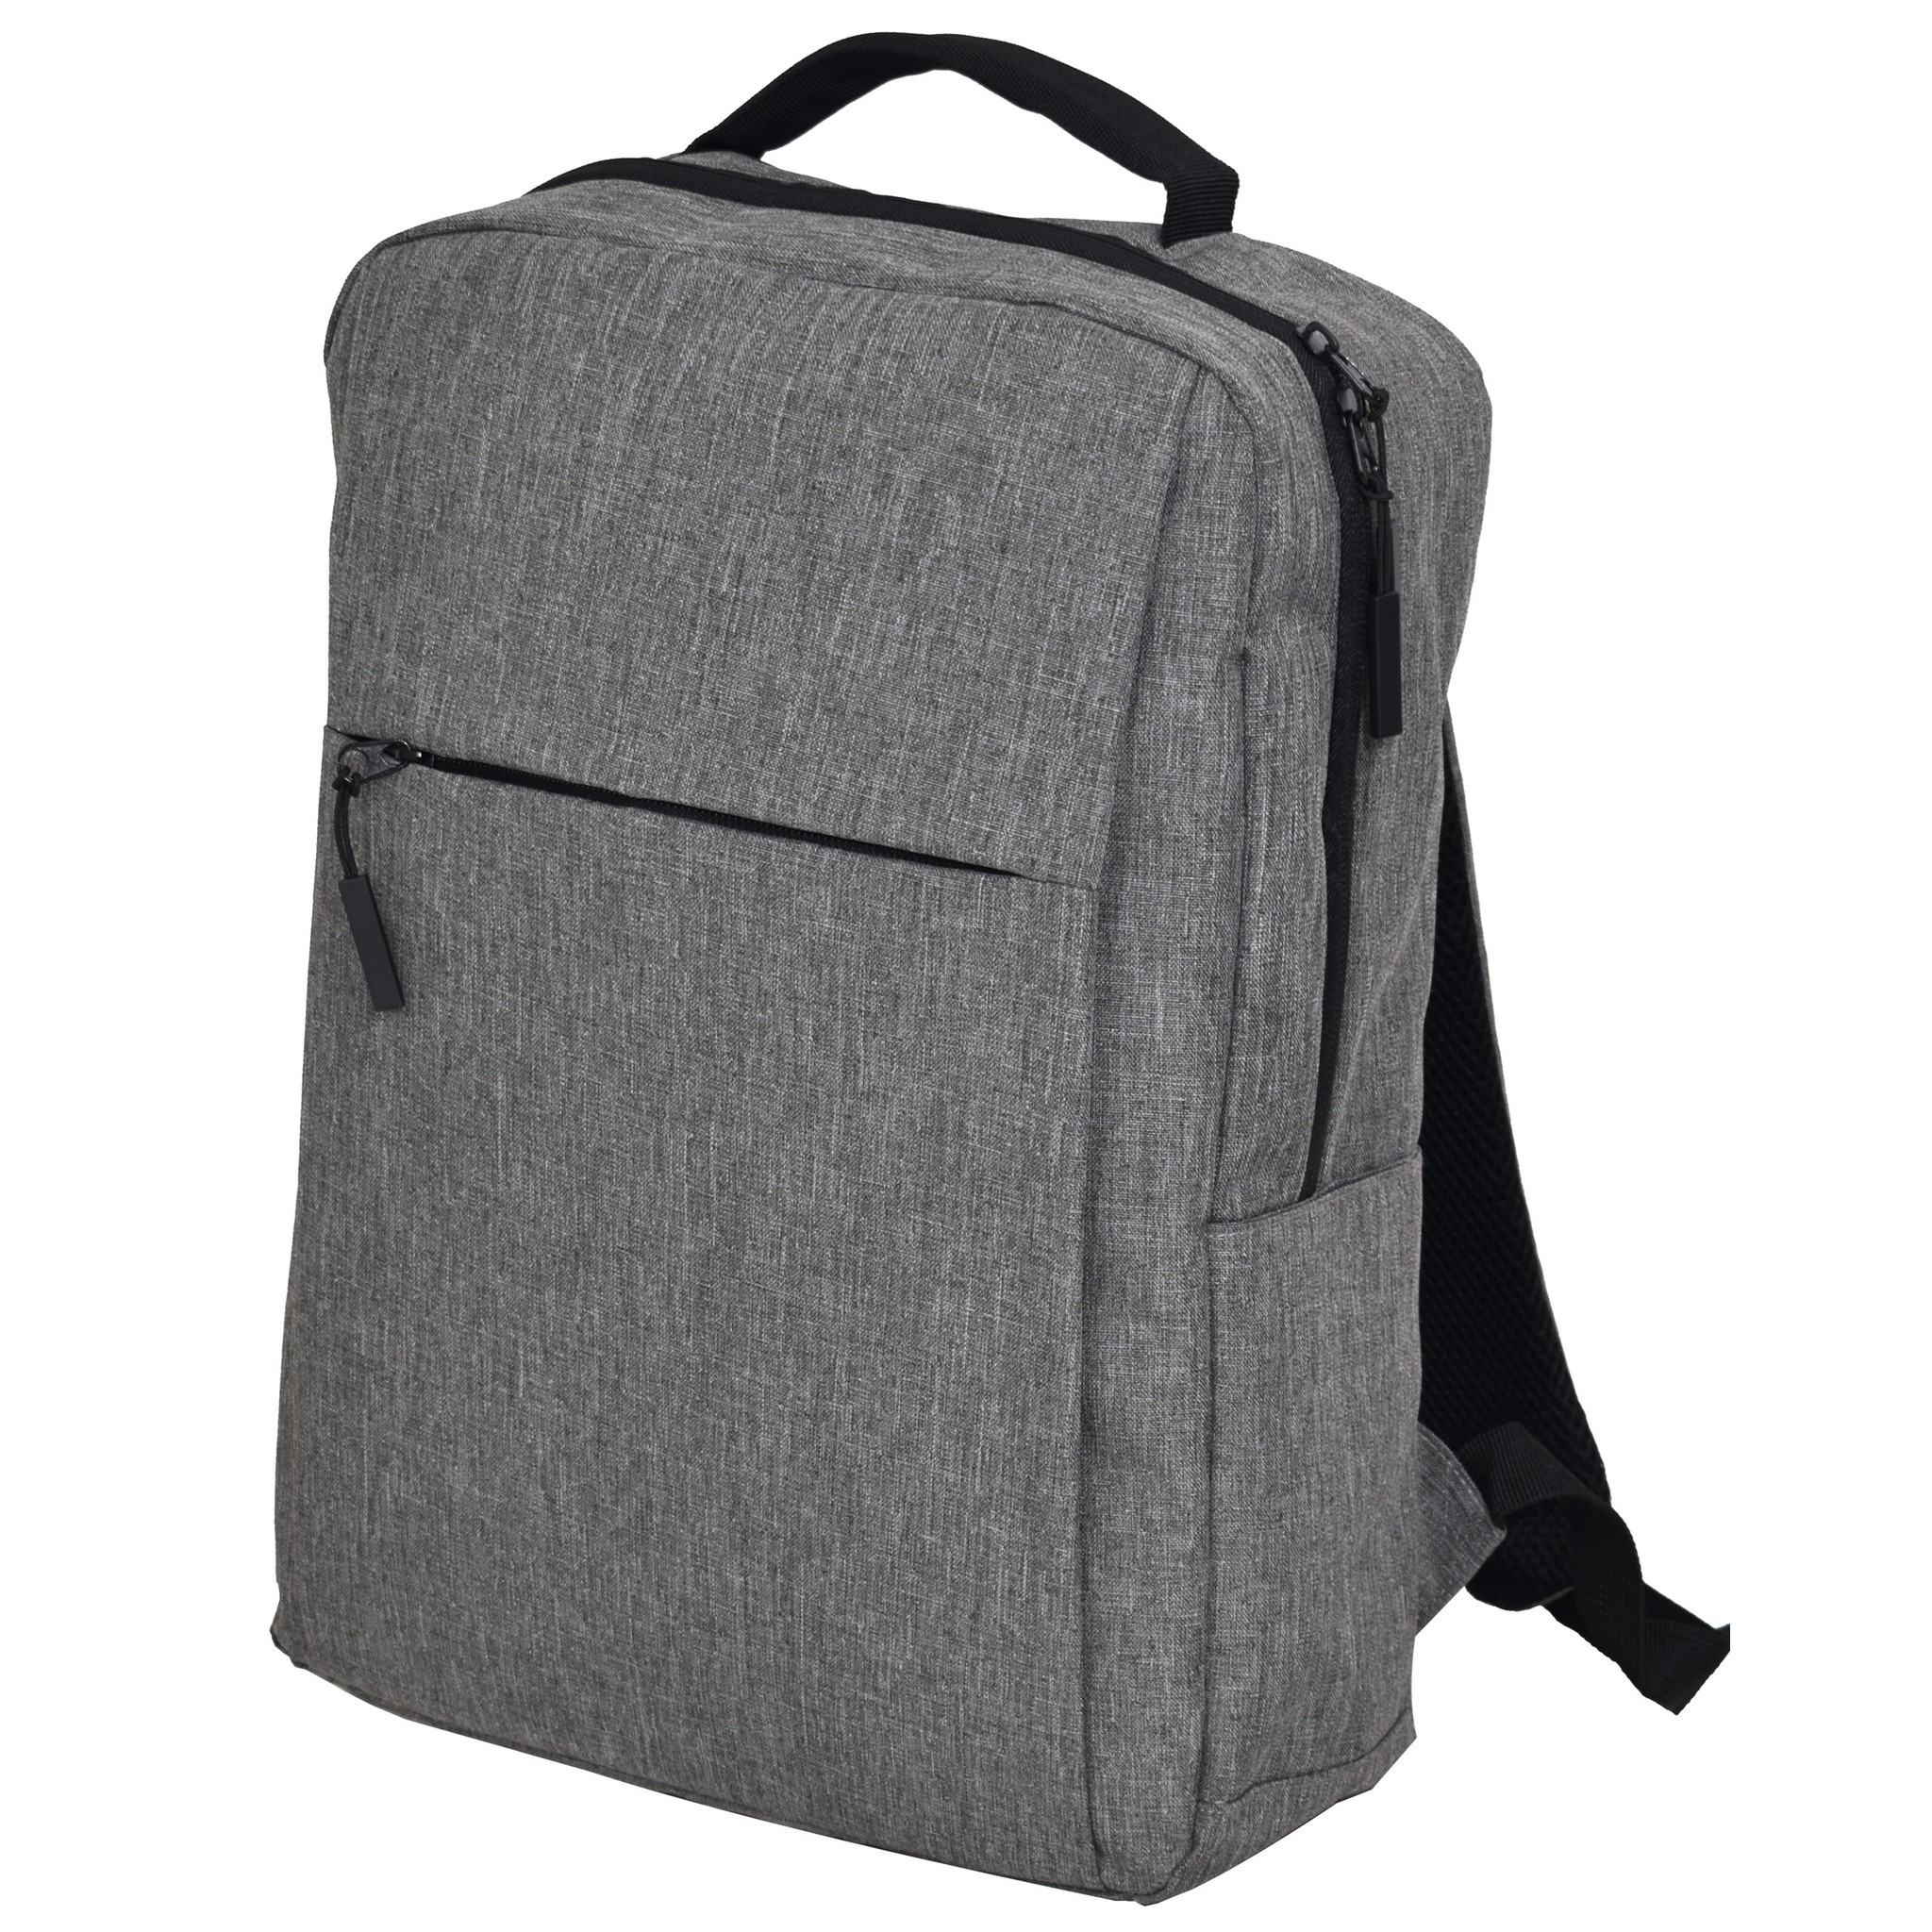 Sturdy Laptop Backpack - Available in Black or Grey